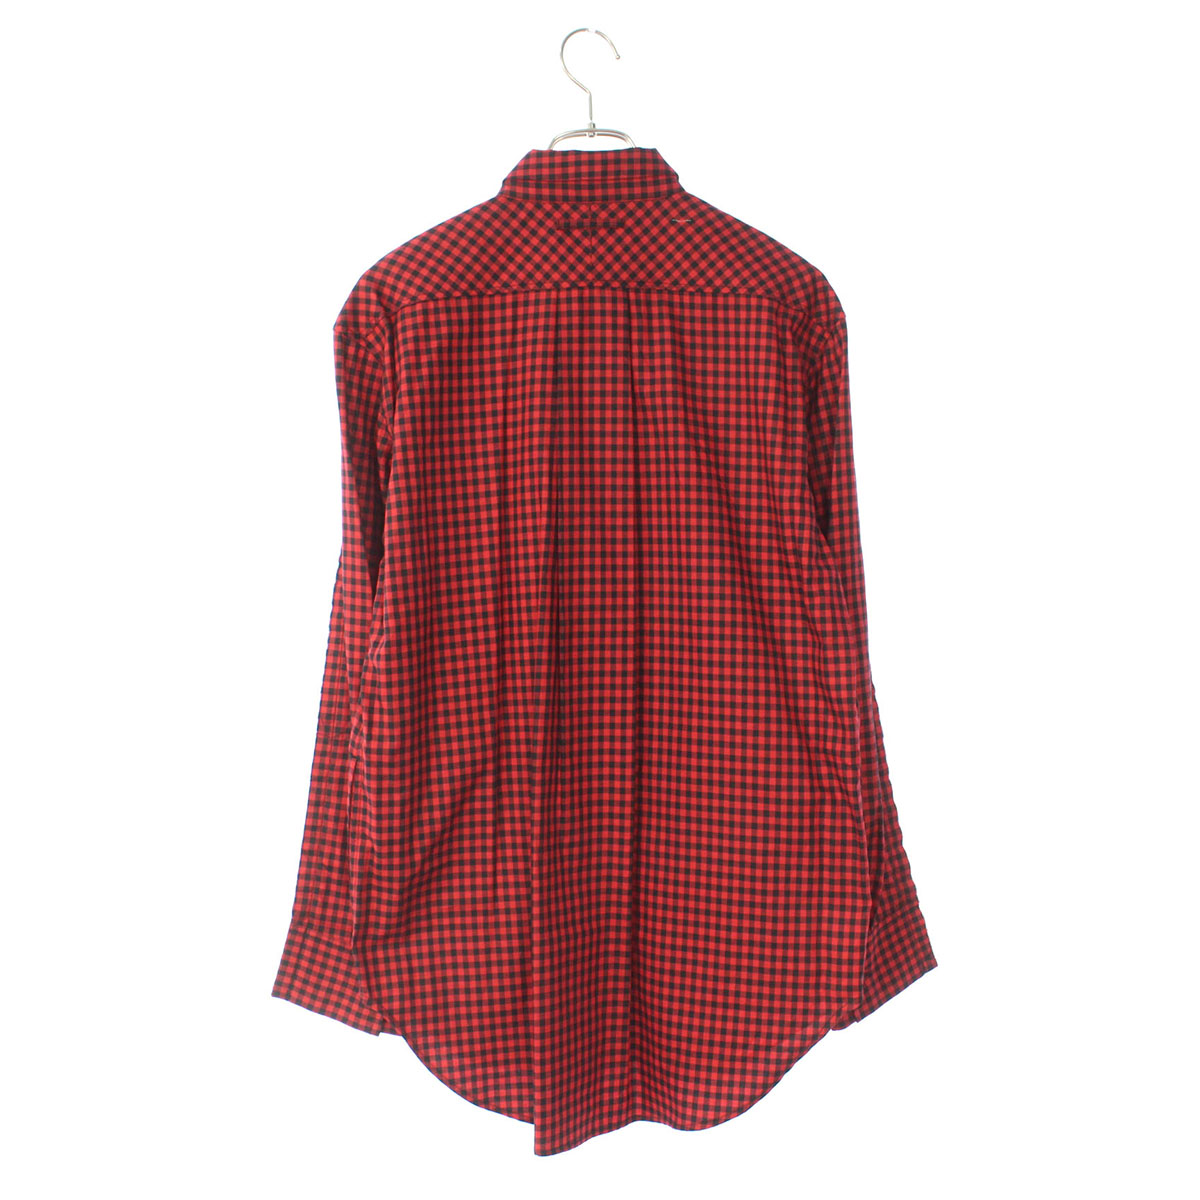 Joined long sleeve check shirt